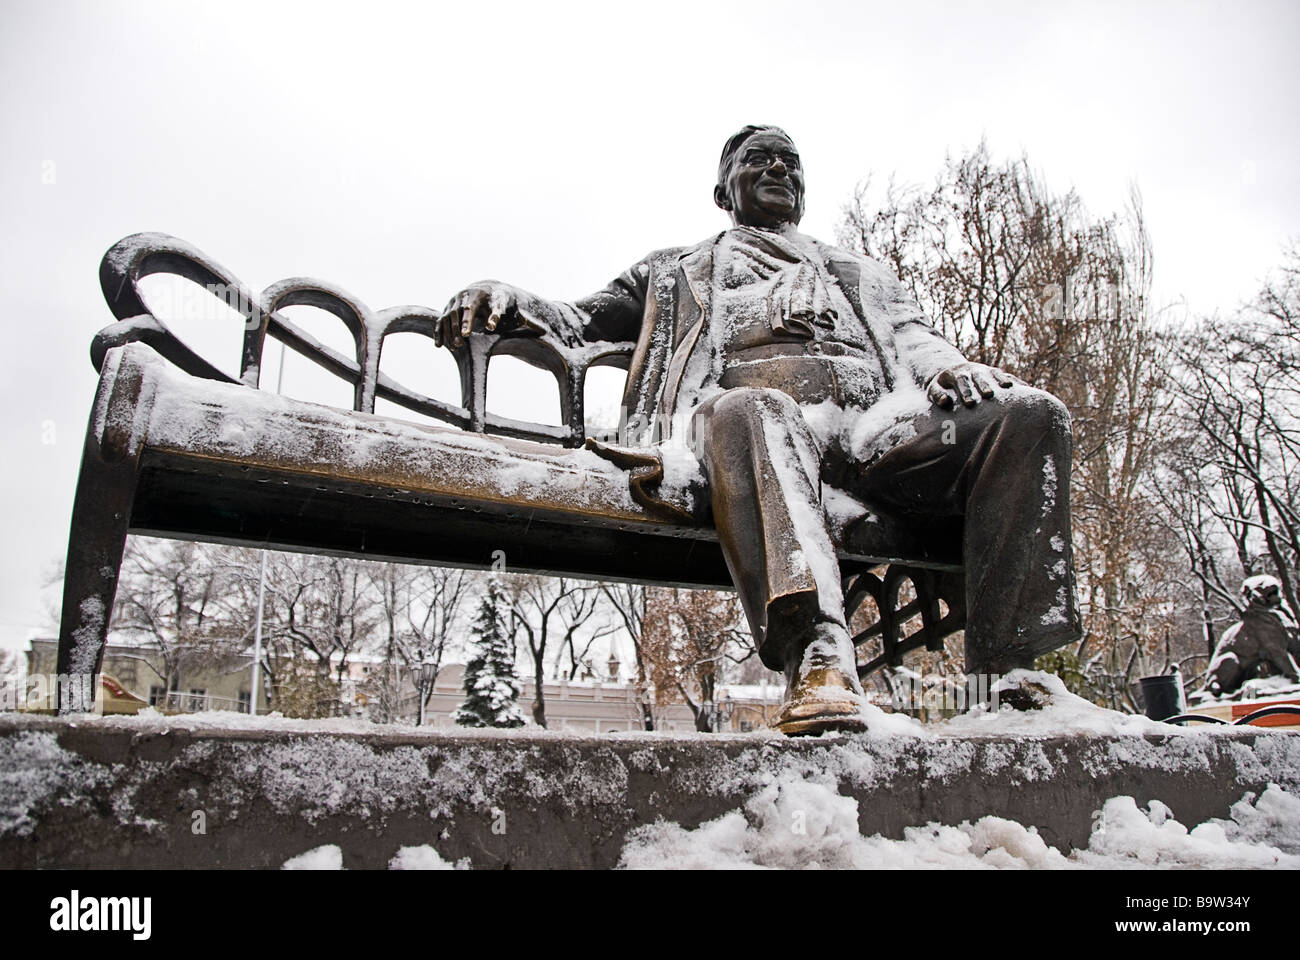 Statue of a man sitting on a bench full of snow, Odessa, Ukraine, Europe Stock Photo